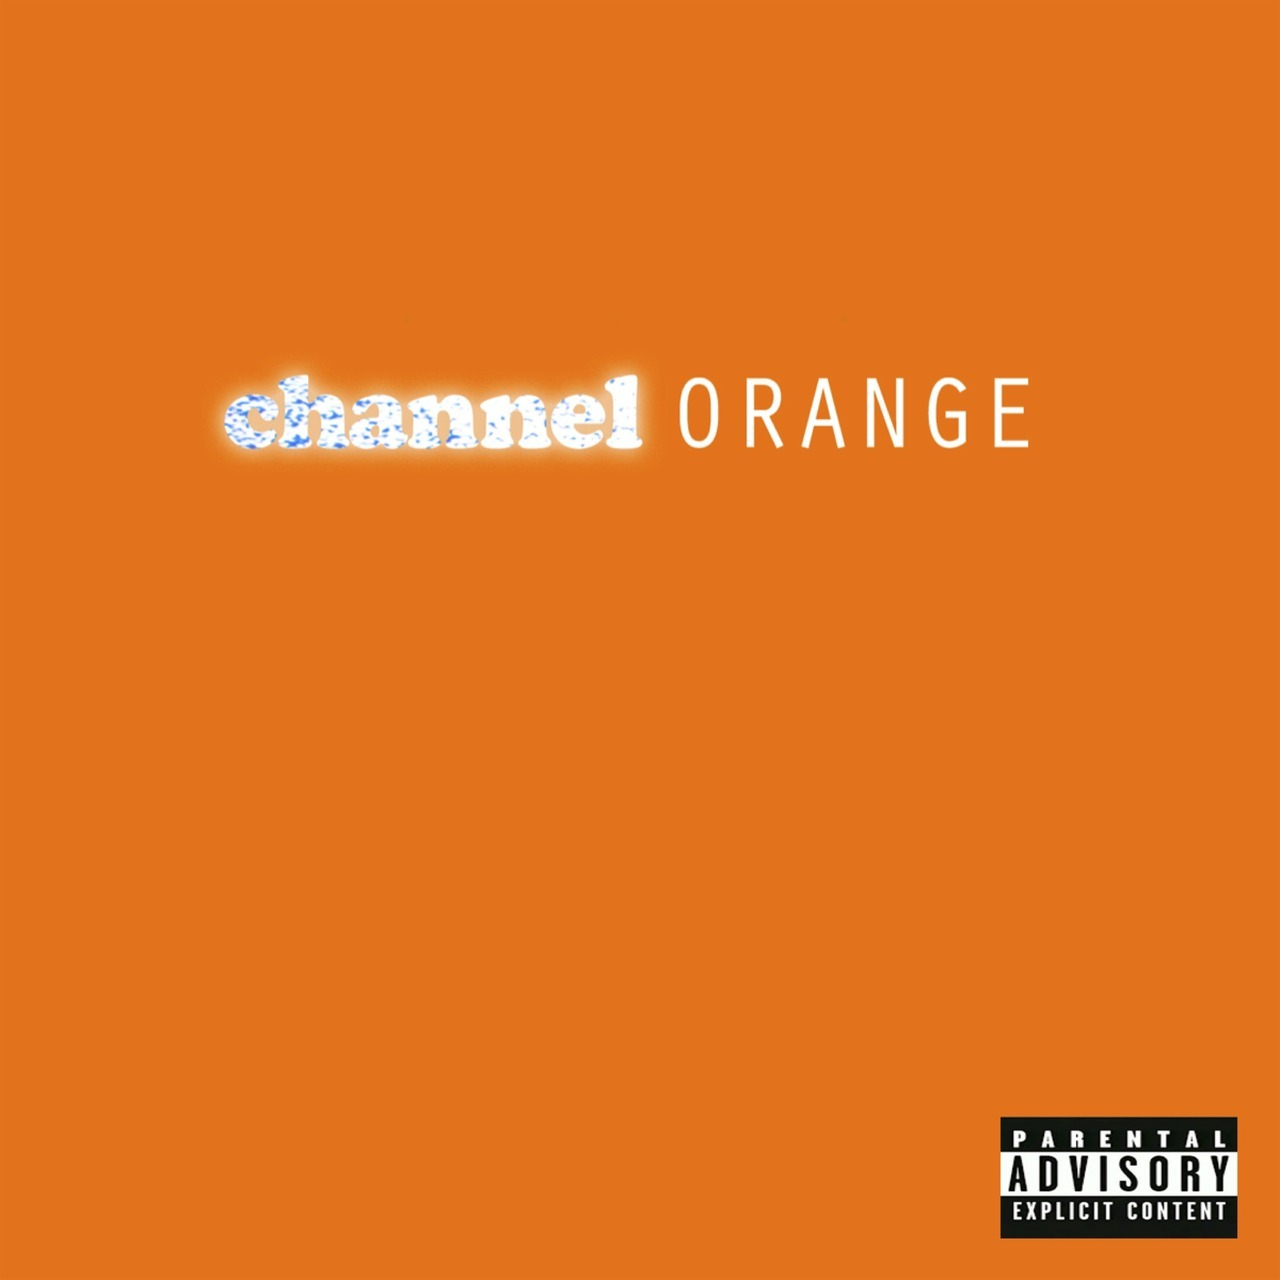 neoohiocollective:  Frank Ocean's channel ORANGE is expected to drop early Tuesday morning after midnight exclusively on iTunes. It is expected to be announced after his performance on Late Night with Jimmy Fallon